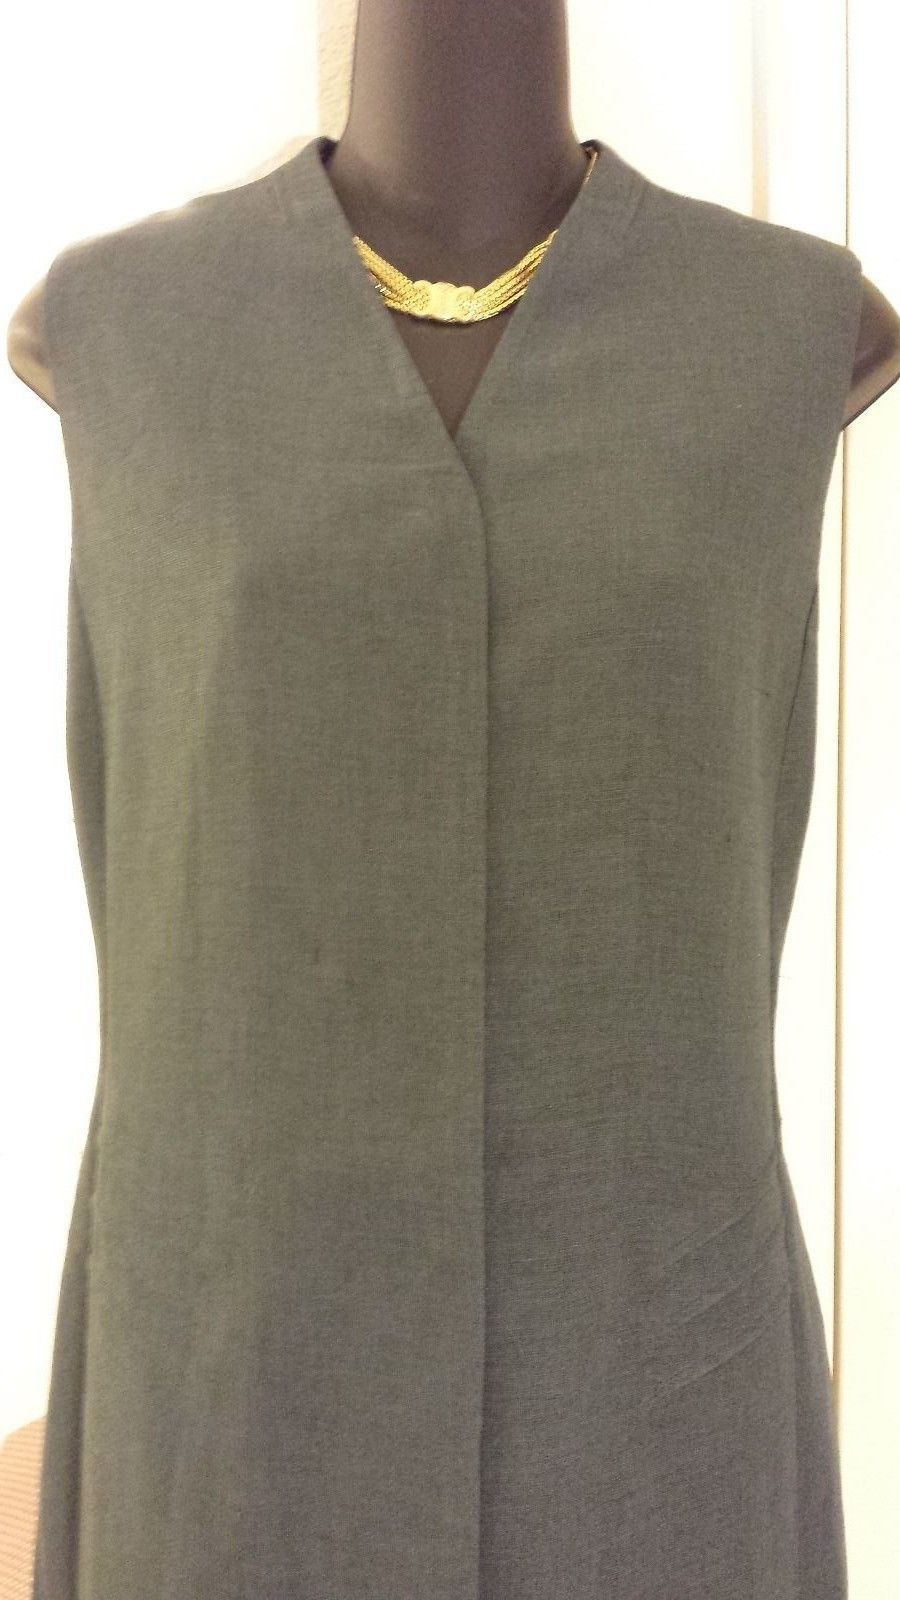 Primary image for *Couture Designer *Armani* Copy Steel Gray Dress Fully Lined sz L (10-12)